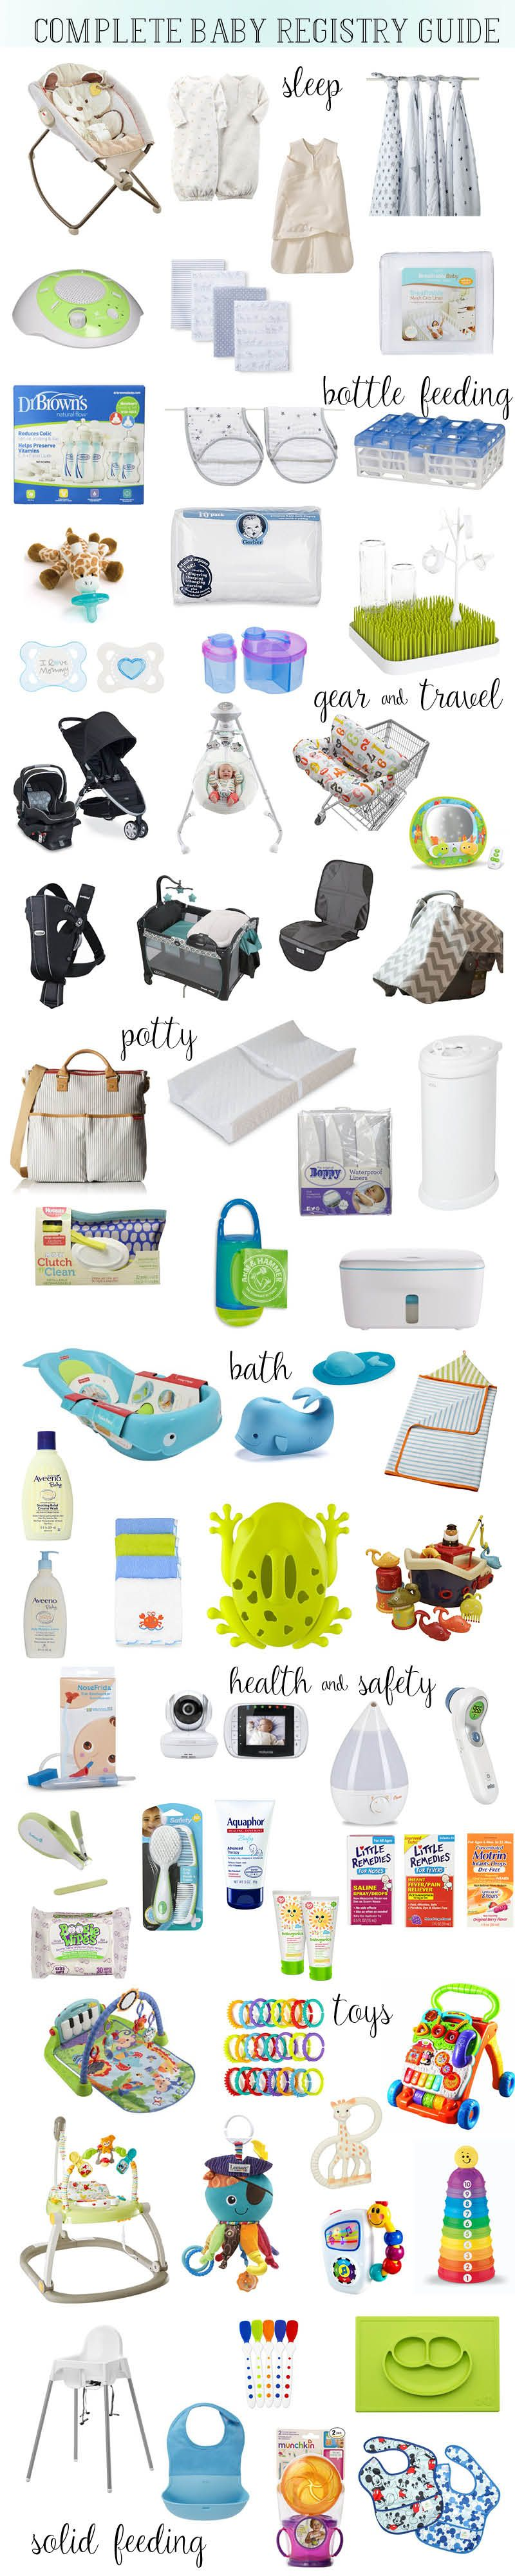 Baby Registry 101 The plete Baby Registry Guide Reviews and